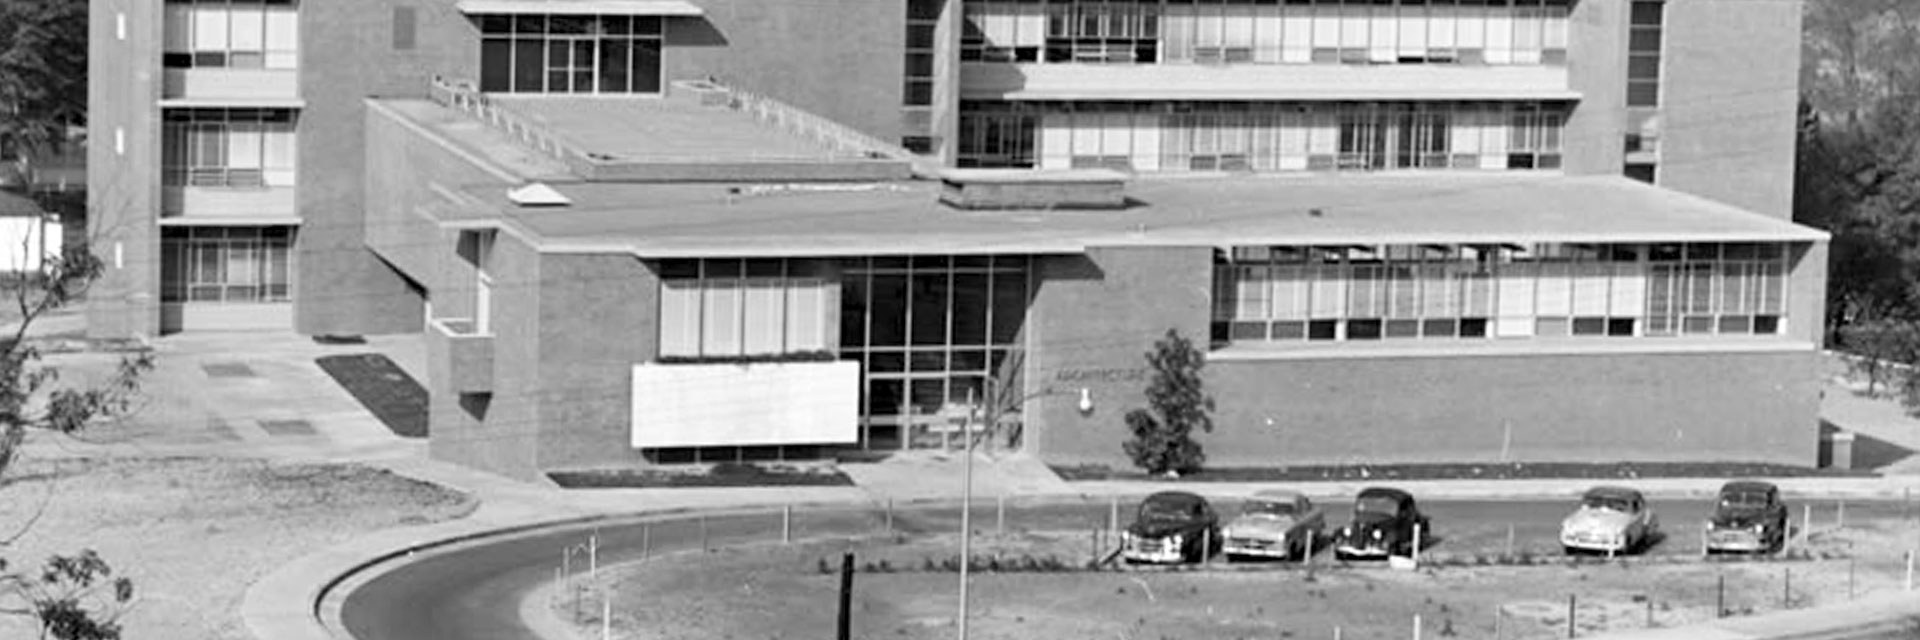 A black and white photo of the East Architecture Building from 1952.